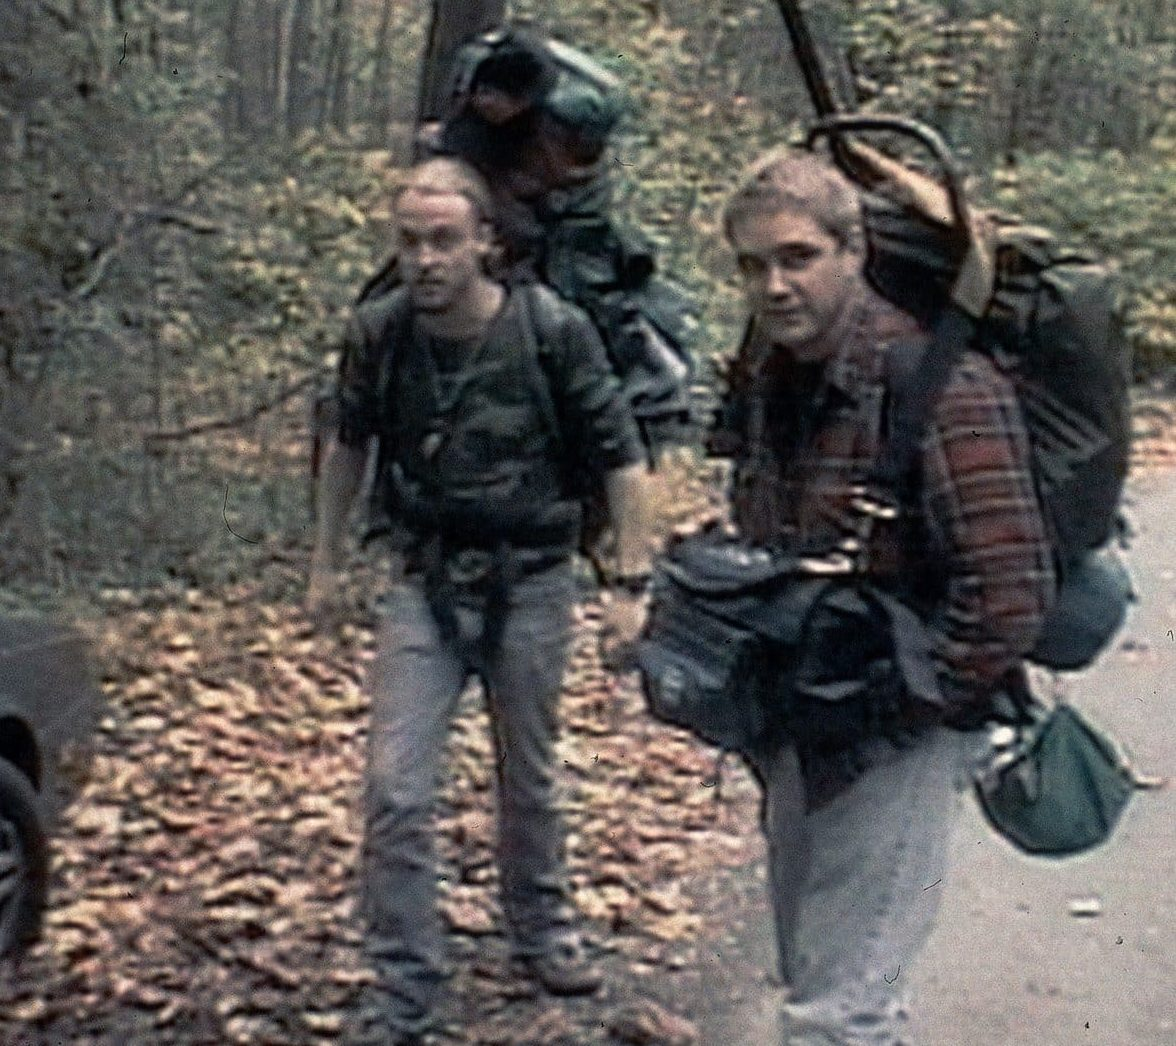 the blair witch project joshua leonard and michael c williams e1623076186925 Films 'Based On A True Story' That Completely Lied To Us